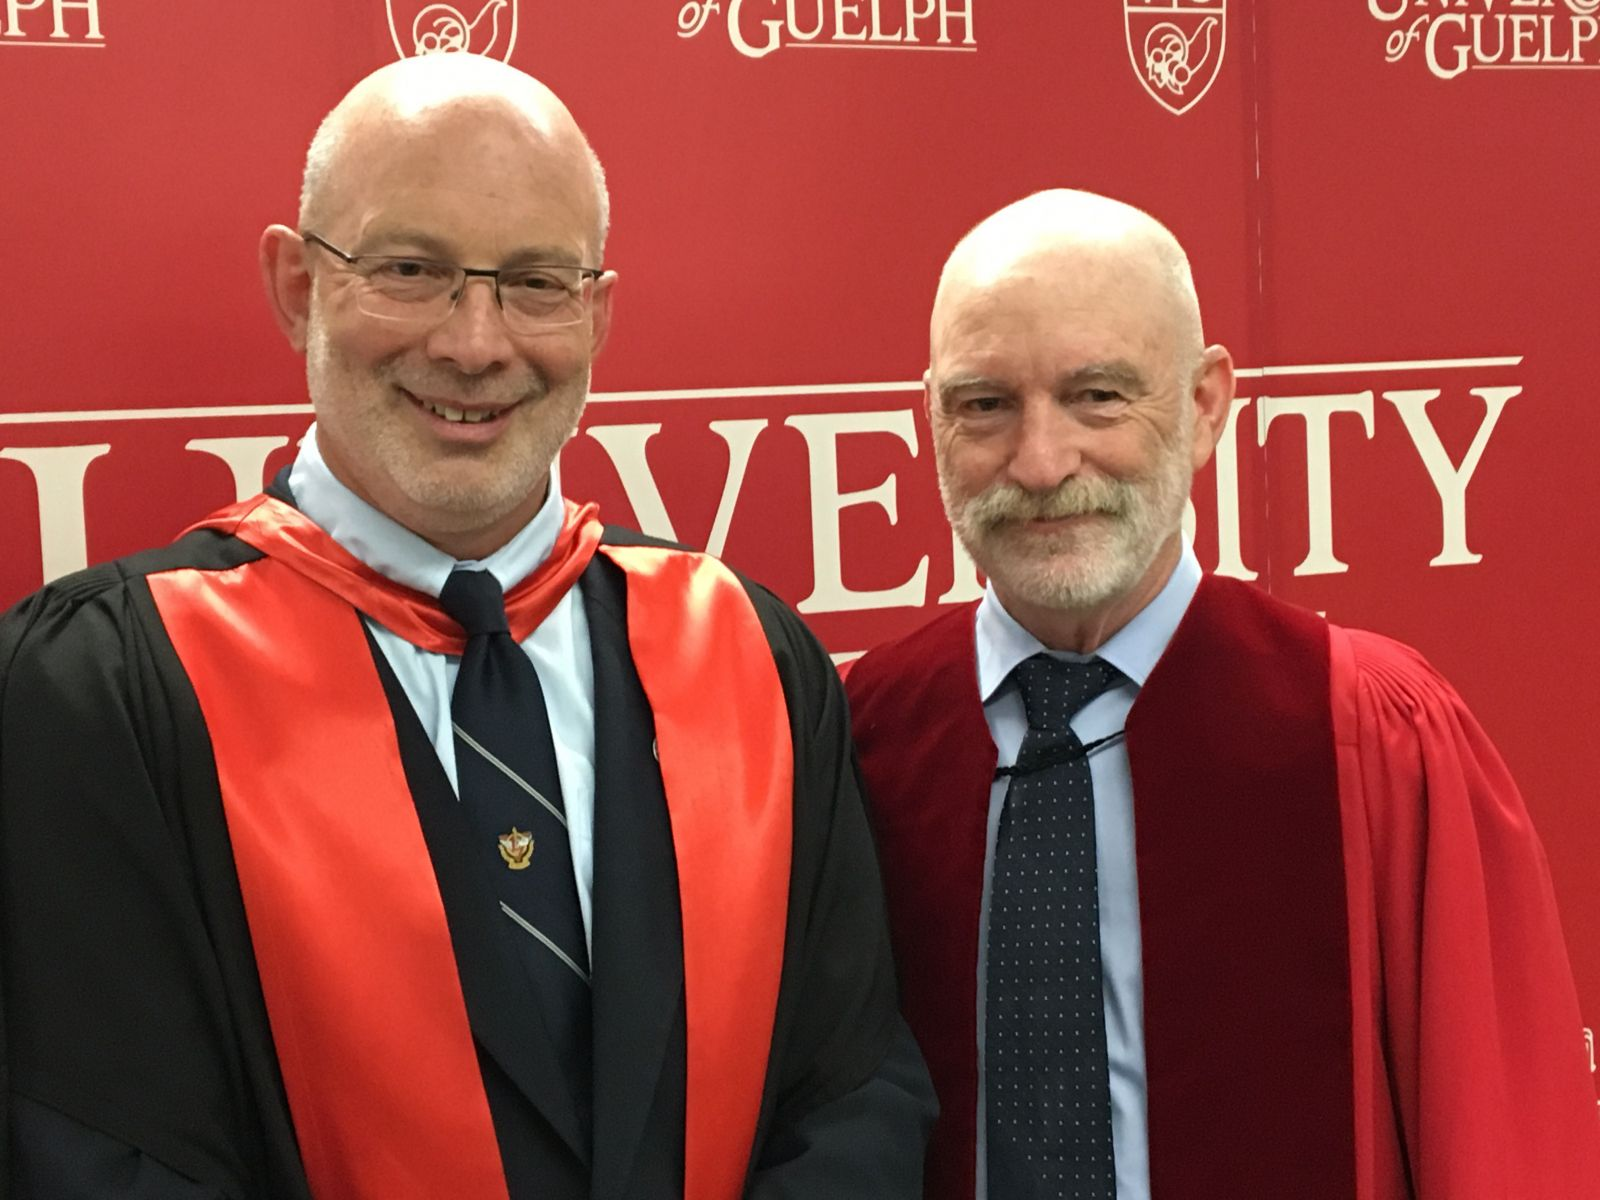 Ontario Veterinary College Dean Jeff Wichtel with Honorary Doctorate recipient Dr. Mike Cranfield, OVC 1977